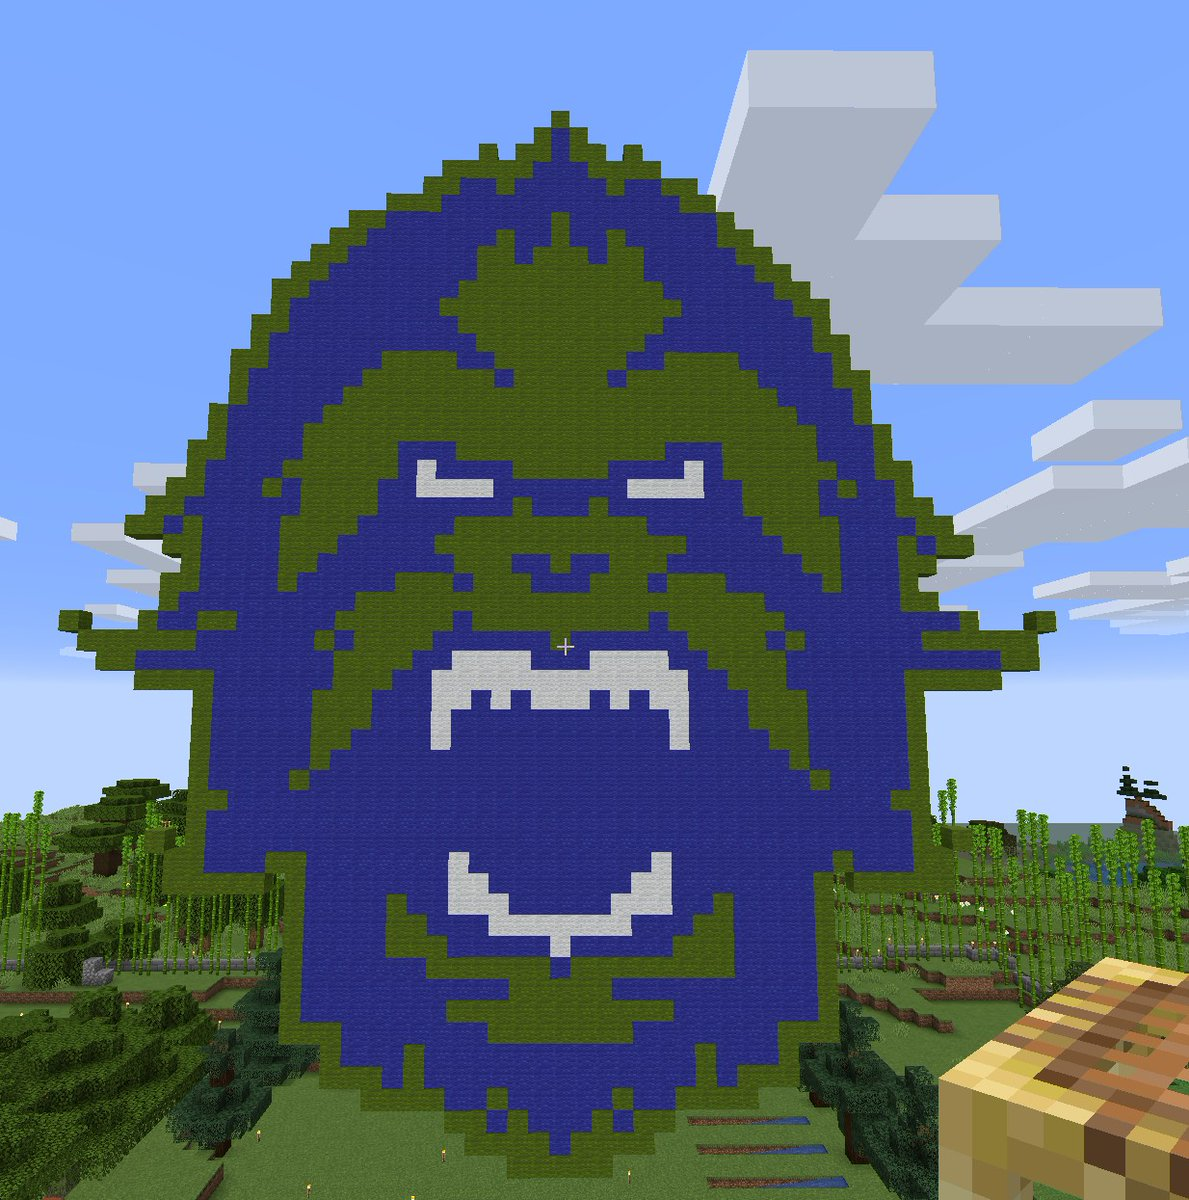 What do people in the #TeamRSP #Minecraft server get up to these days? Stuff like this! Well done @Corhen! #ForceOfNature #VancouverTitans #OWL2020 https://t.co/2O7uX6MOp5